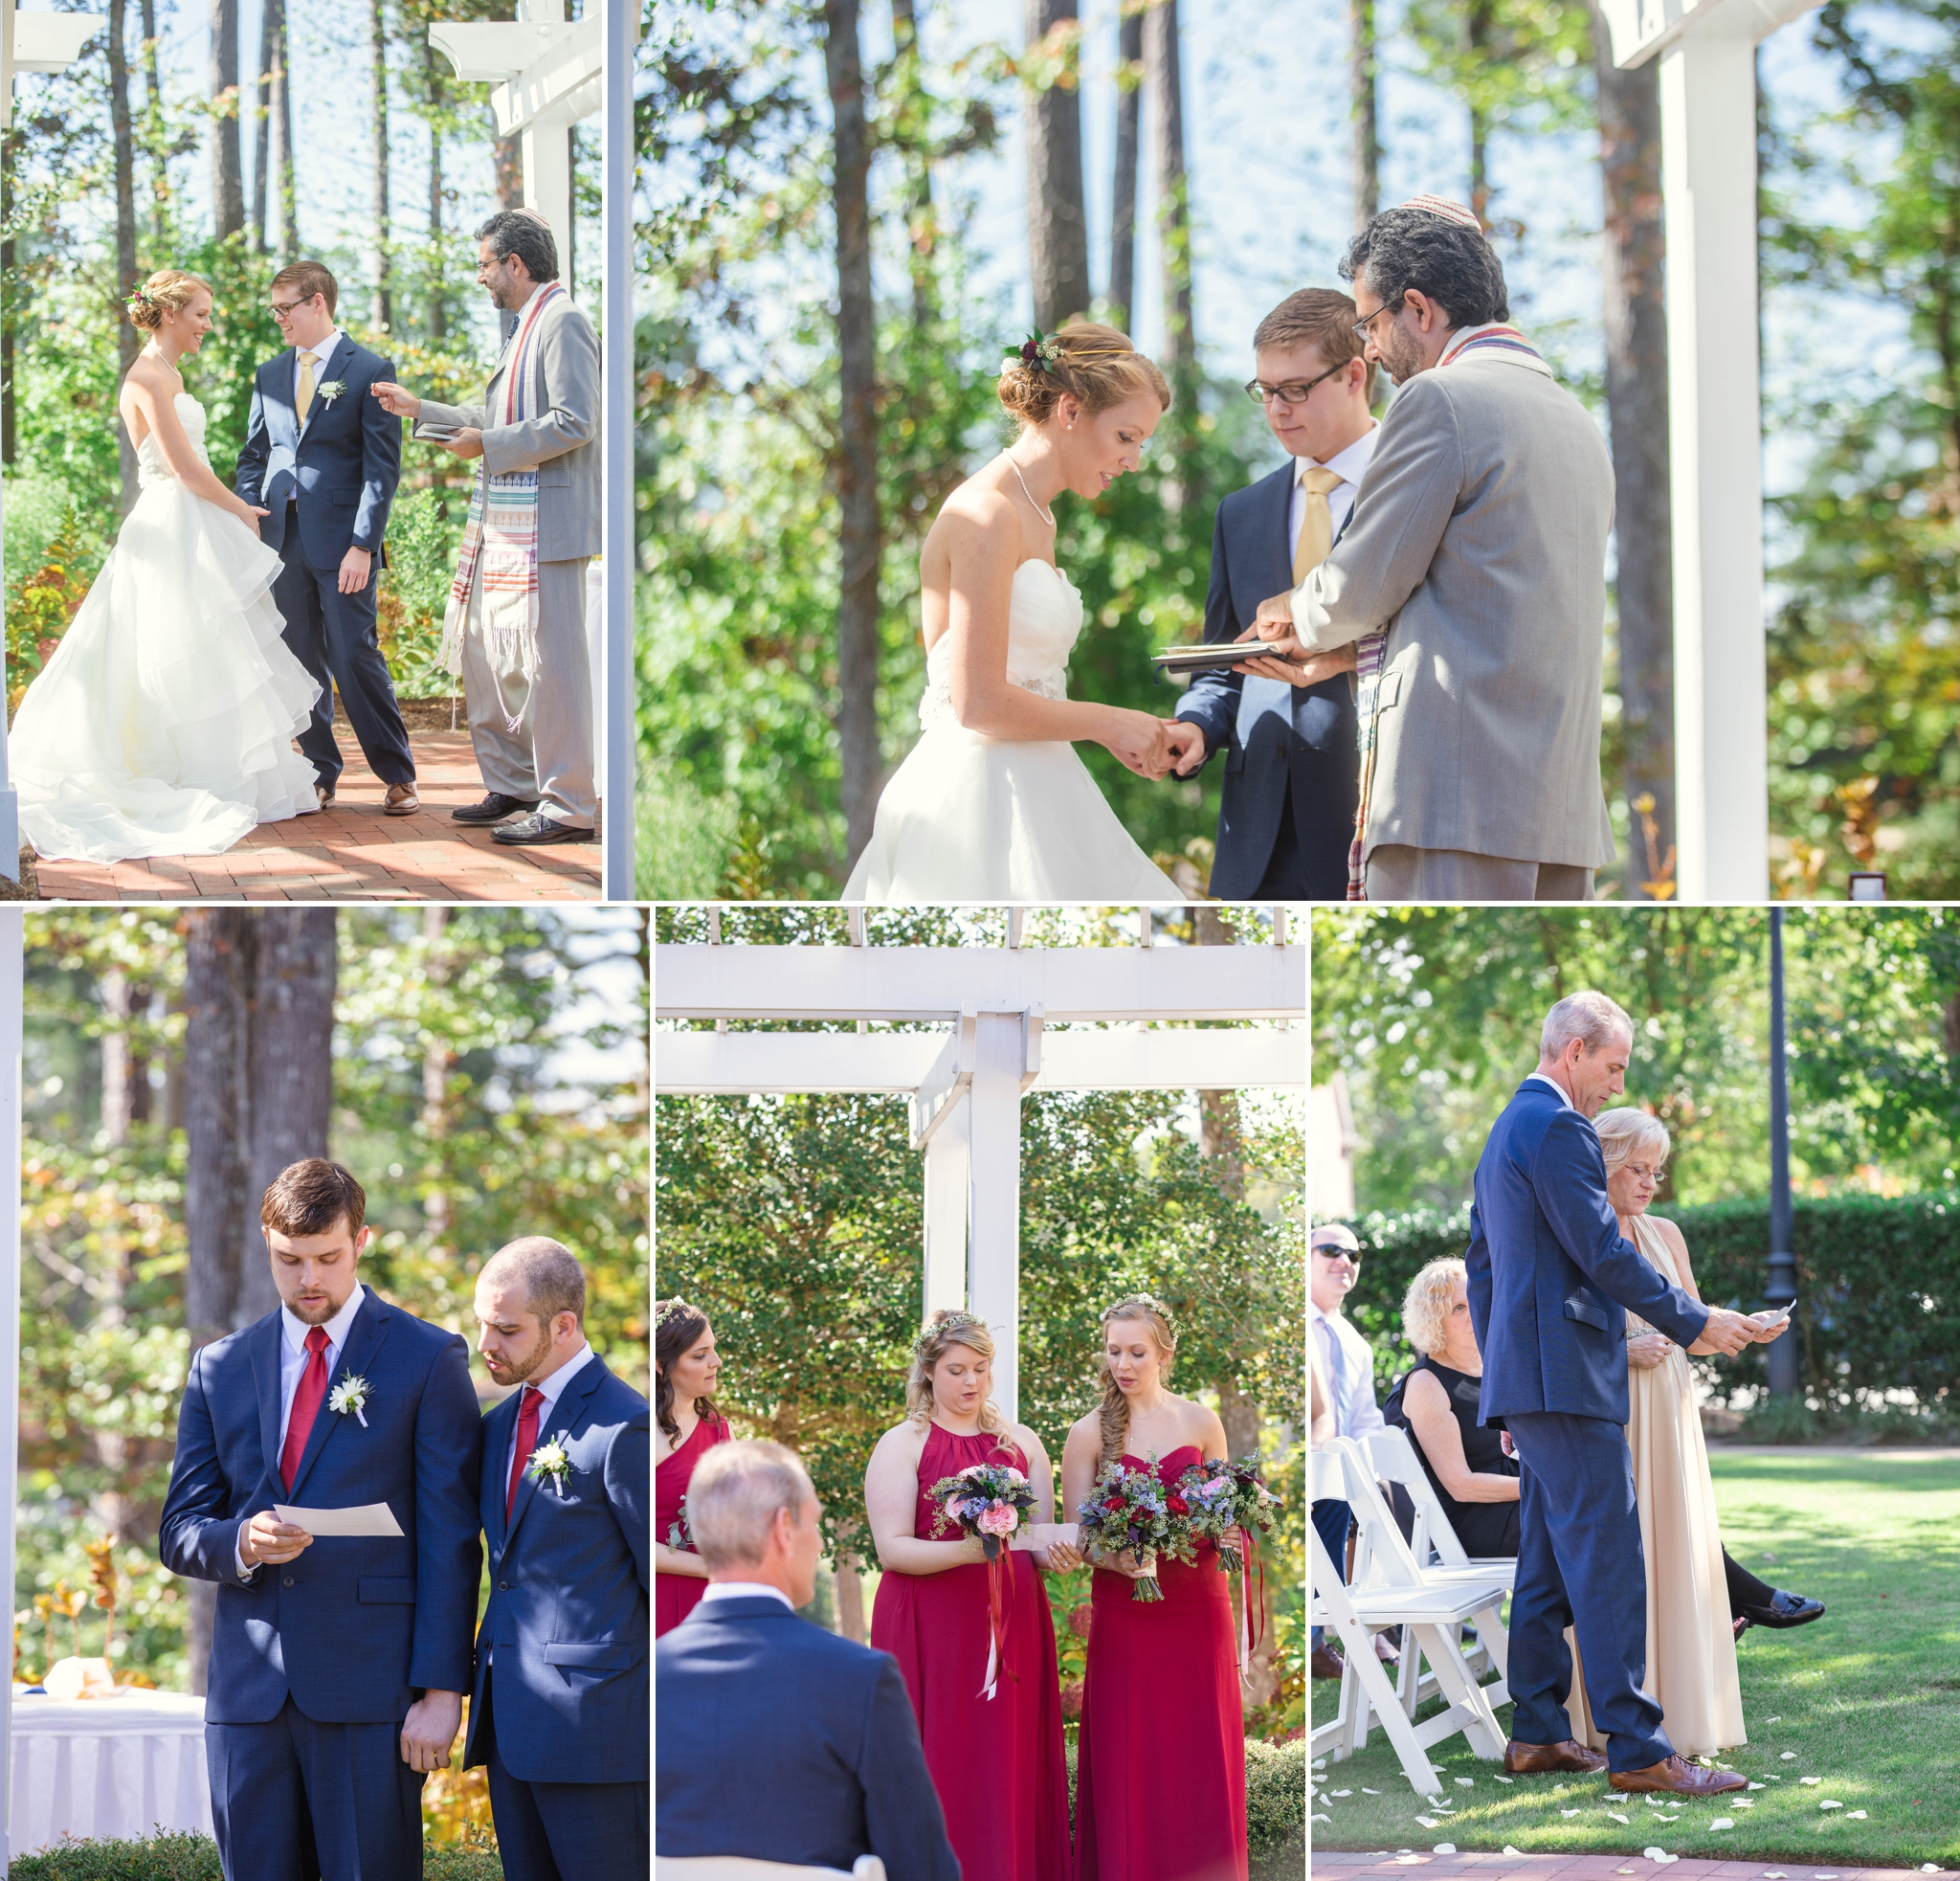 Wedding Photographer at Brier Creek Country Club in Raleigh North Carolina